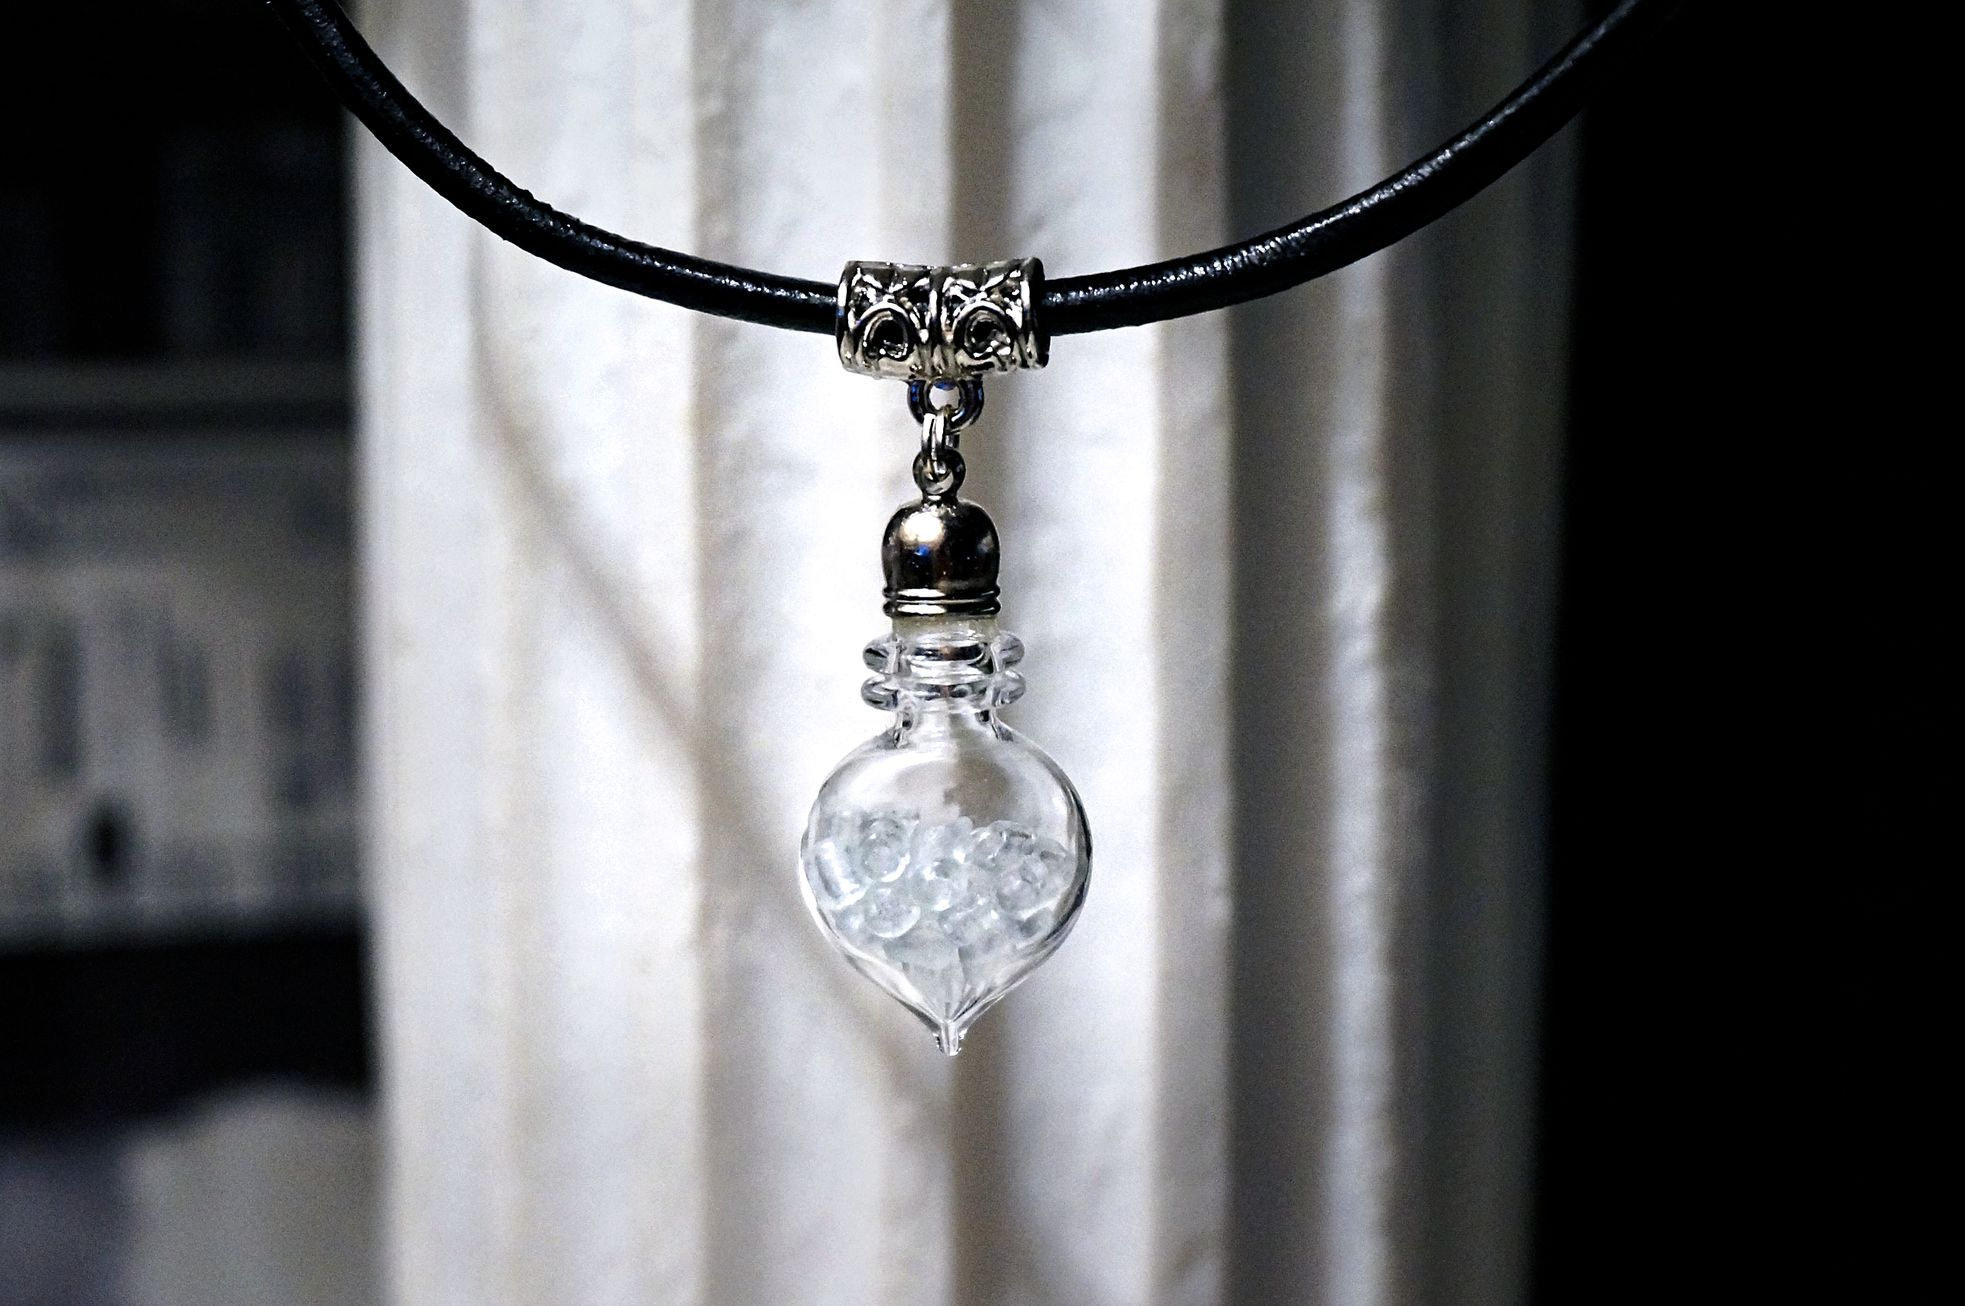 bottle necklace pendant